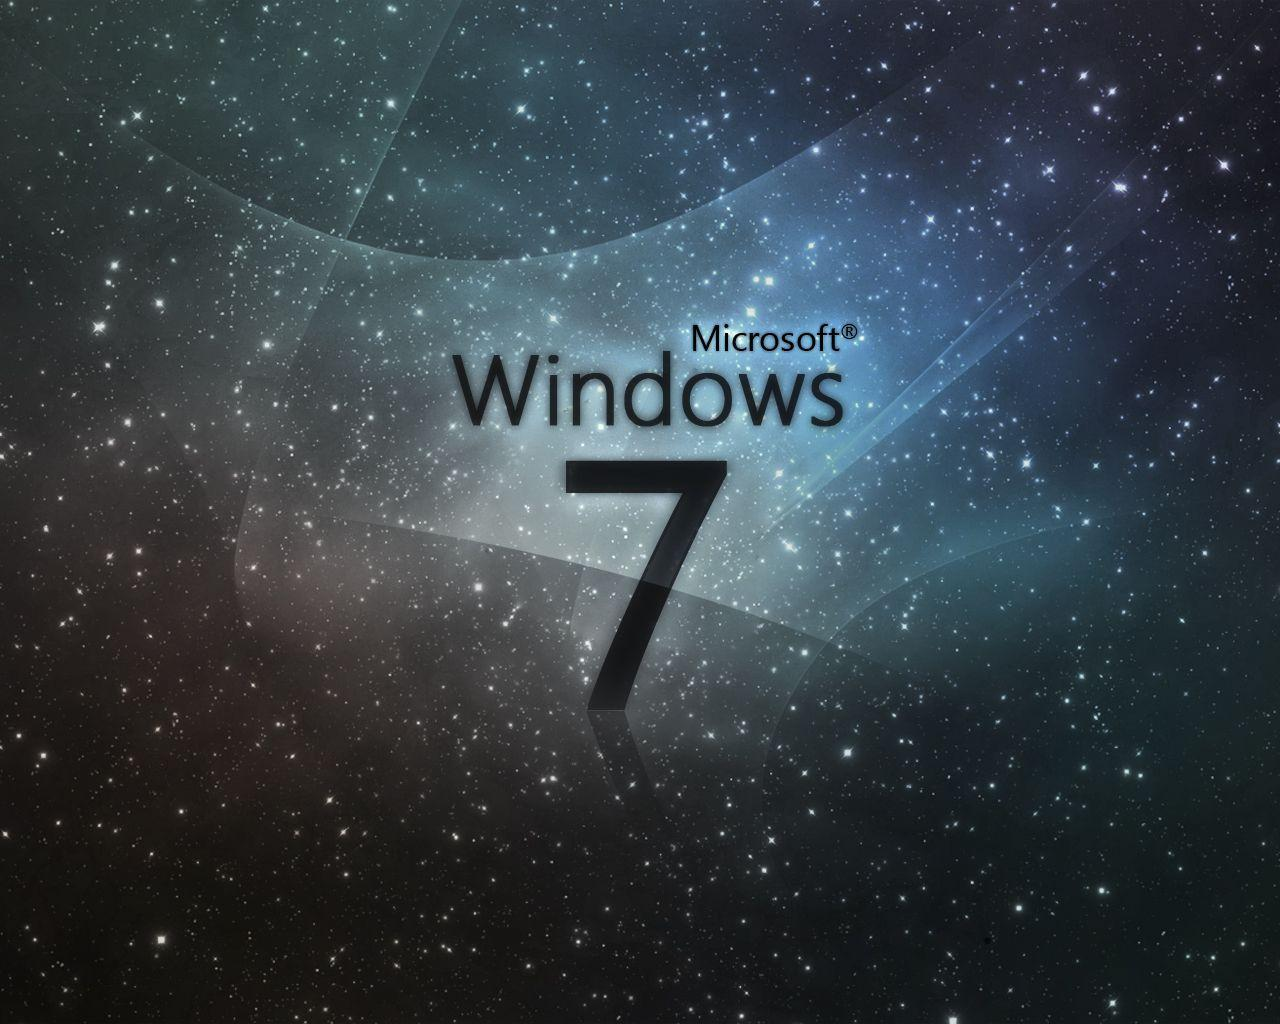 Windows 7 Black Wallpapers